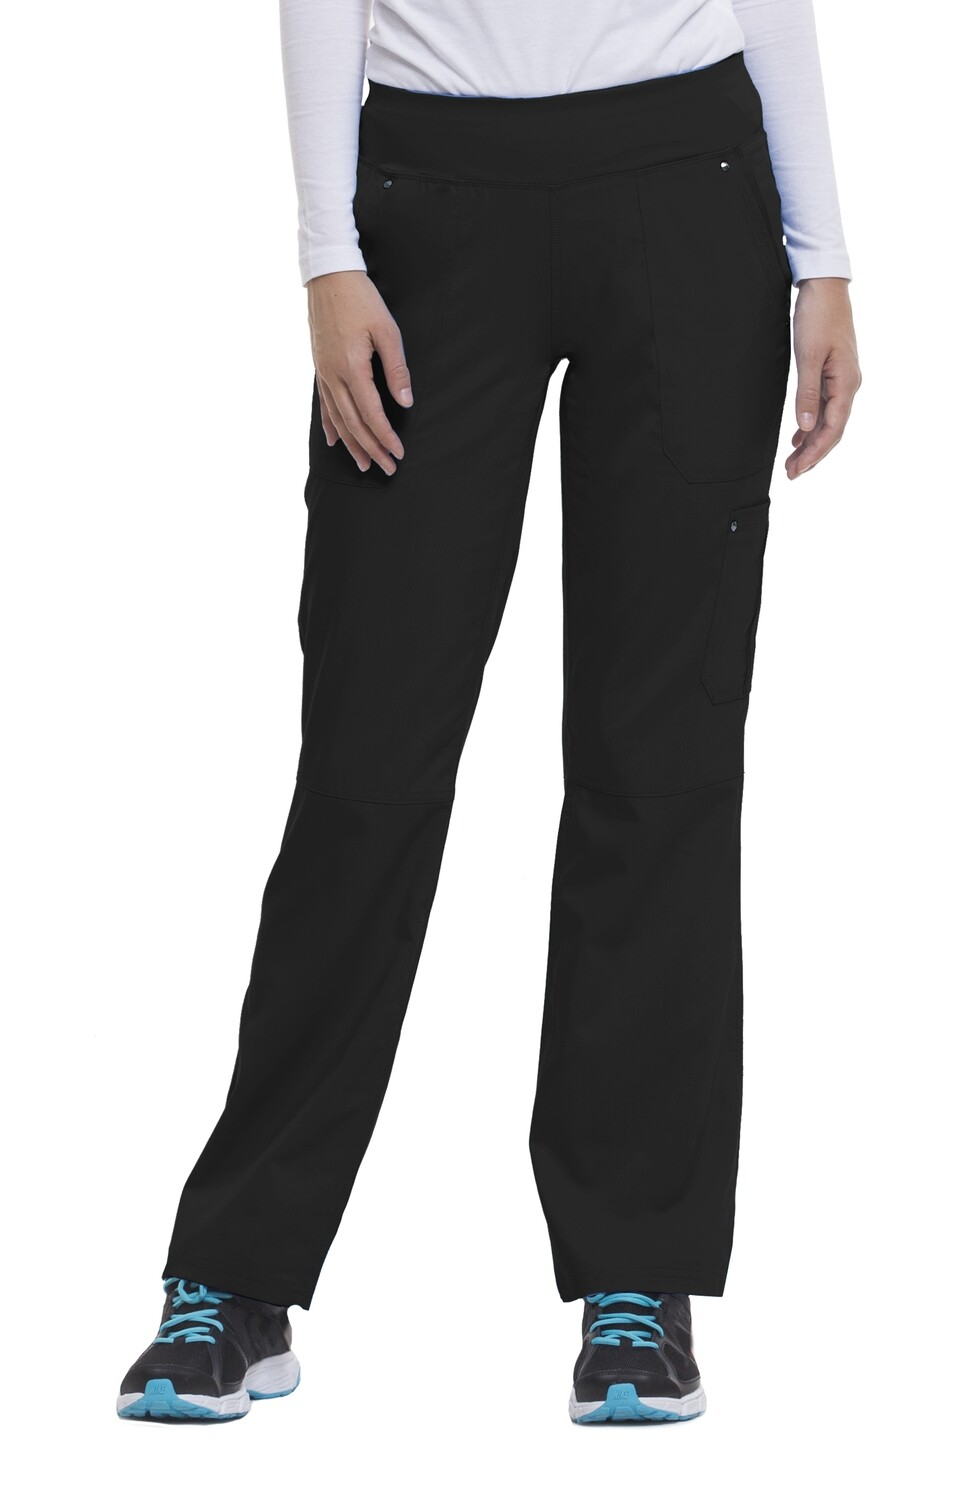 9133 BLACK TORI PANT - PL XL